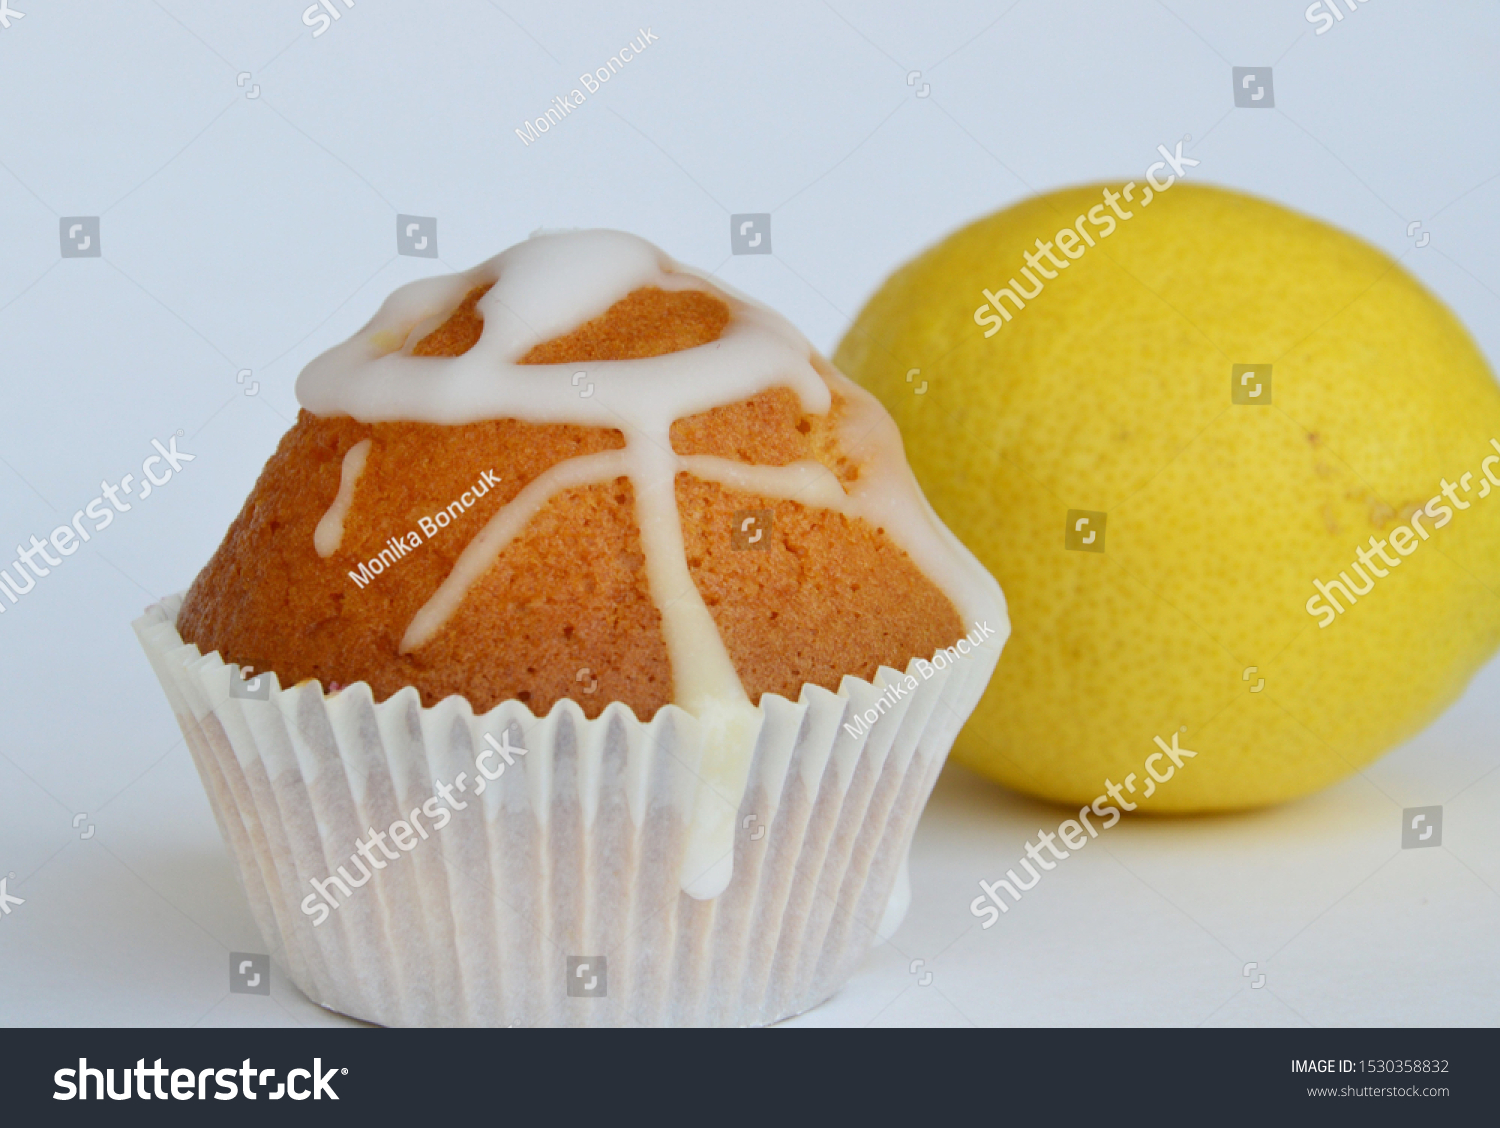 stock-photo-a-fresh-and-tasty-muffin-wit